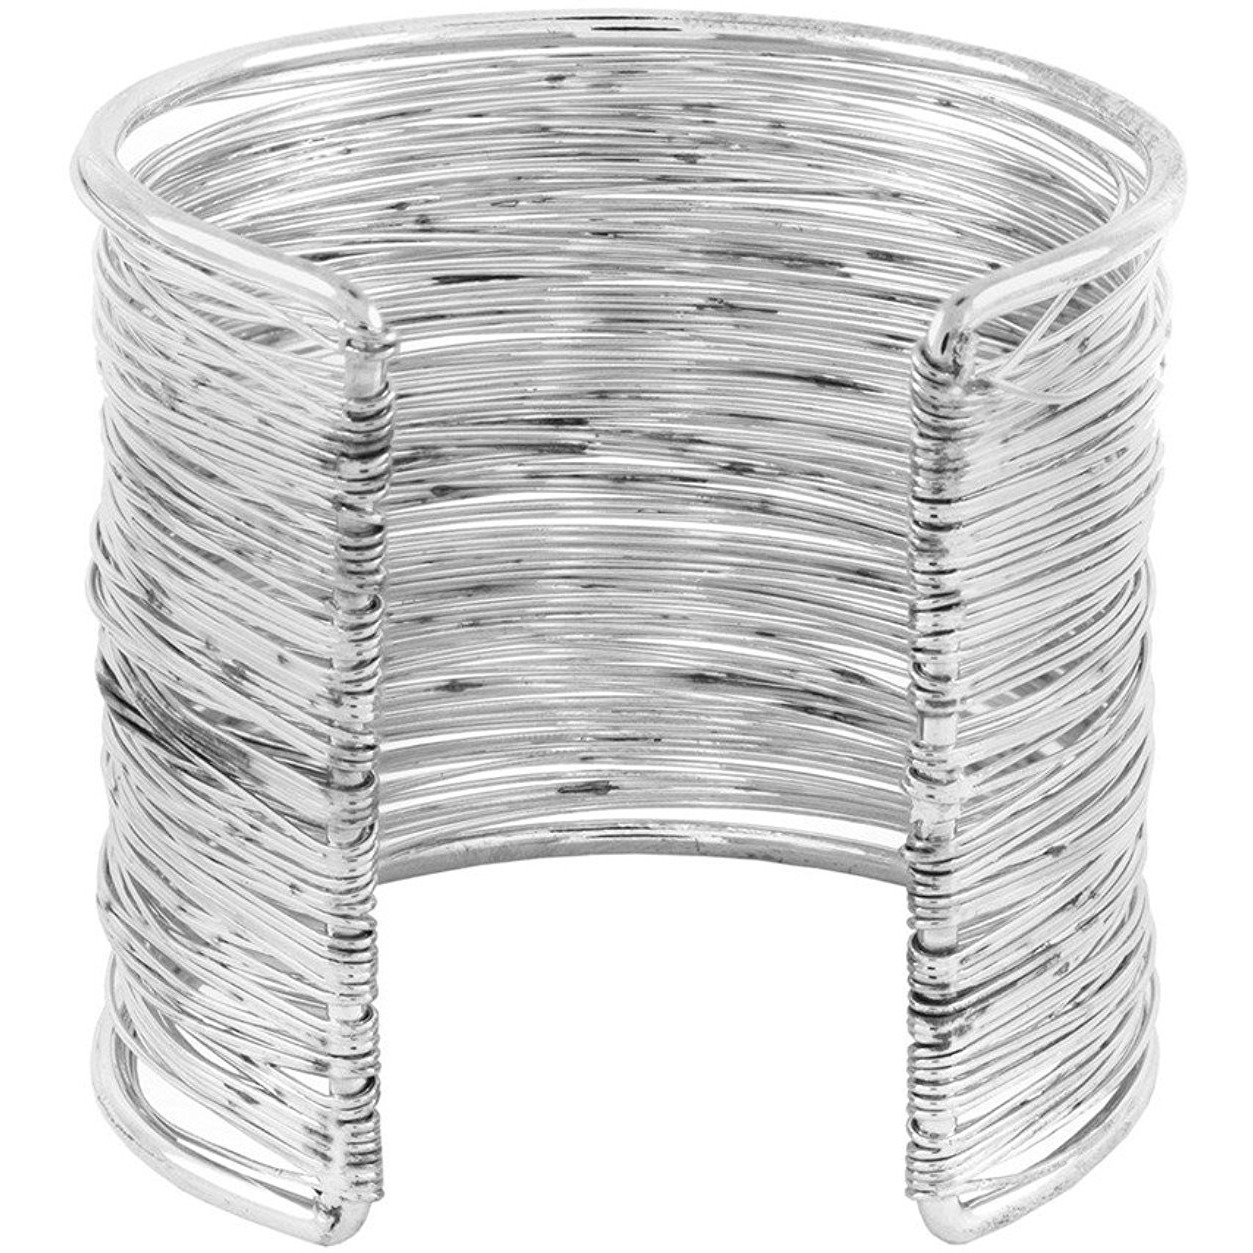 Zivom Party Statement Mesh Imported Rhodium Silver Free Size Cuff Kada Bangle Bracelet For Girls Women